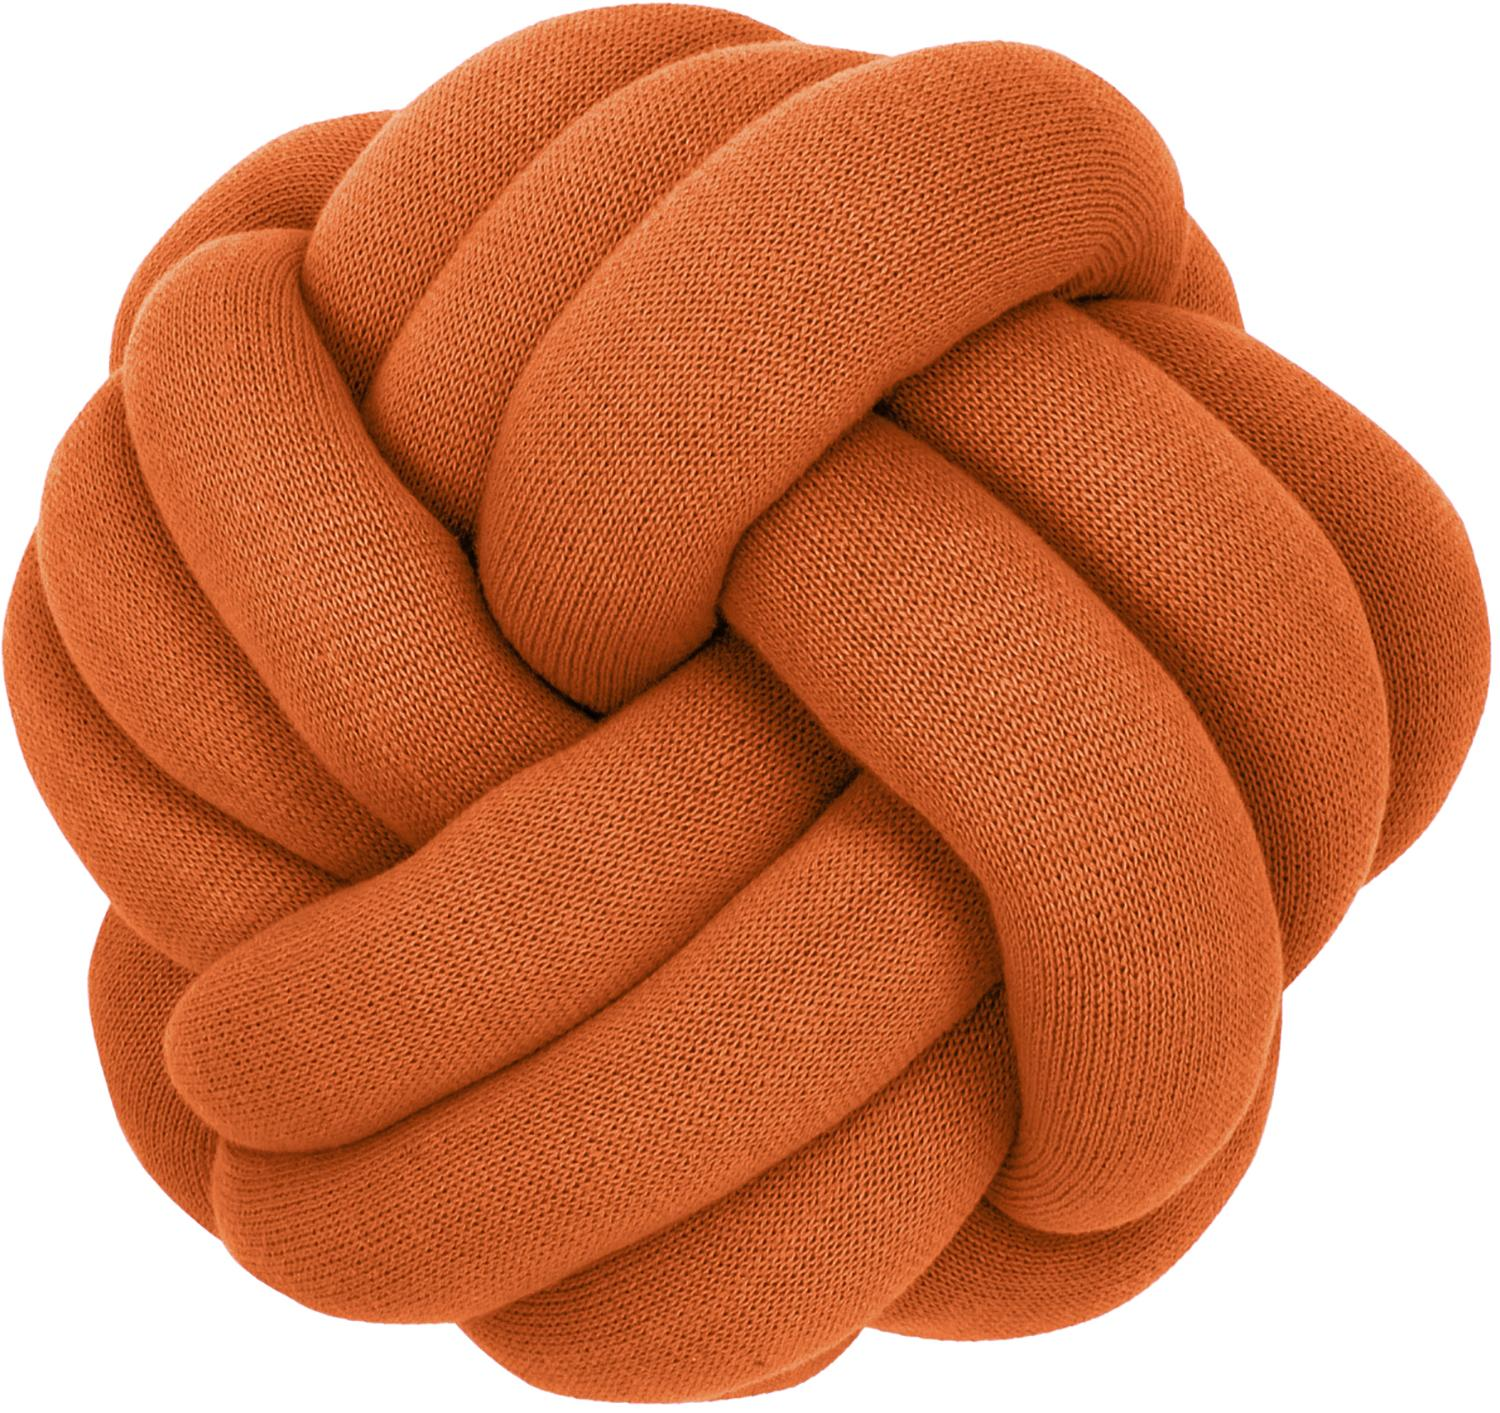 Cuscino annodato color terracotta Twist, Terracotta, Ø 30 cm